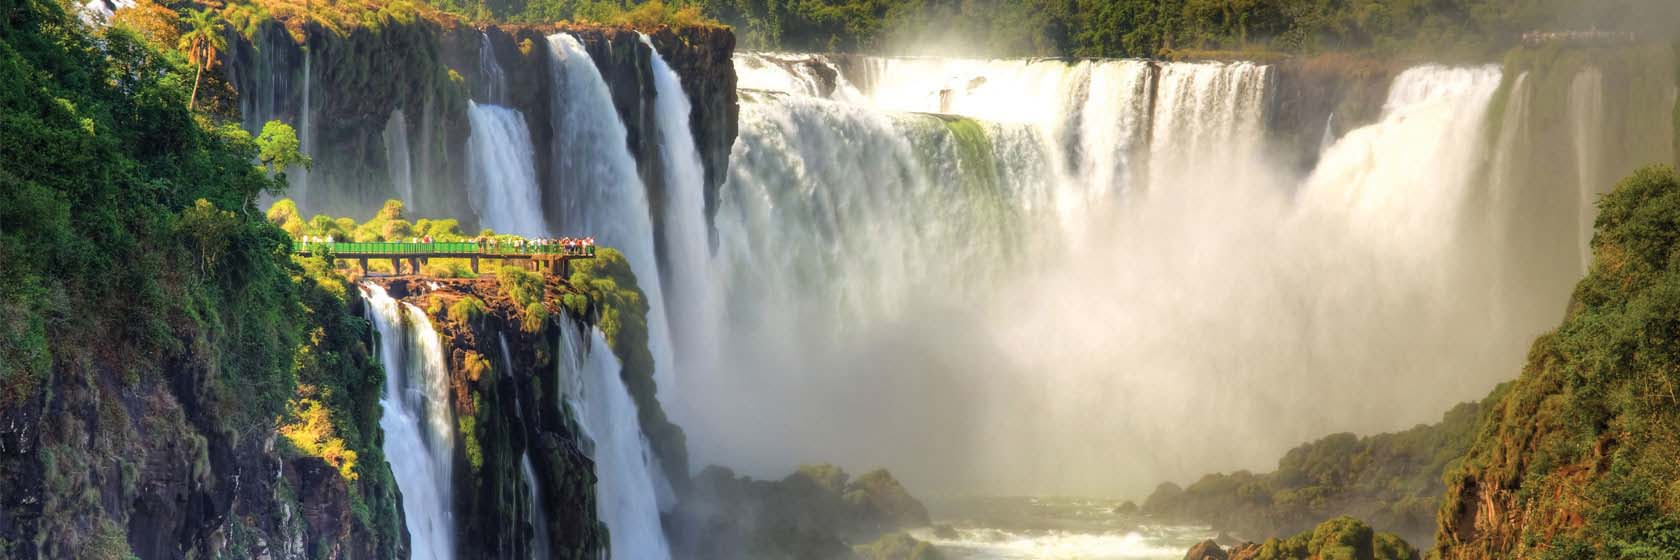 Treasures of Argentina, 15 Days Buenos Aires to Salta with A&K